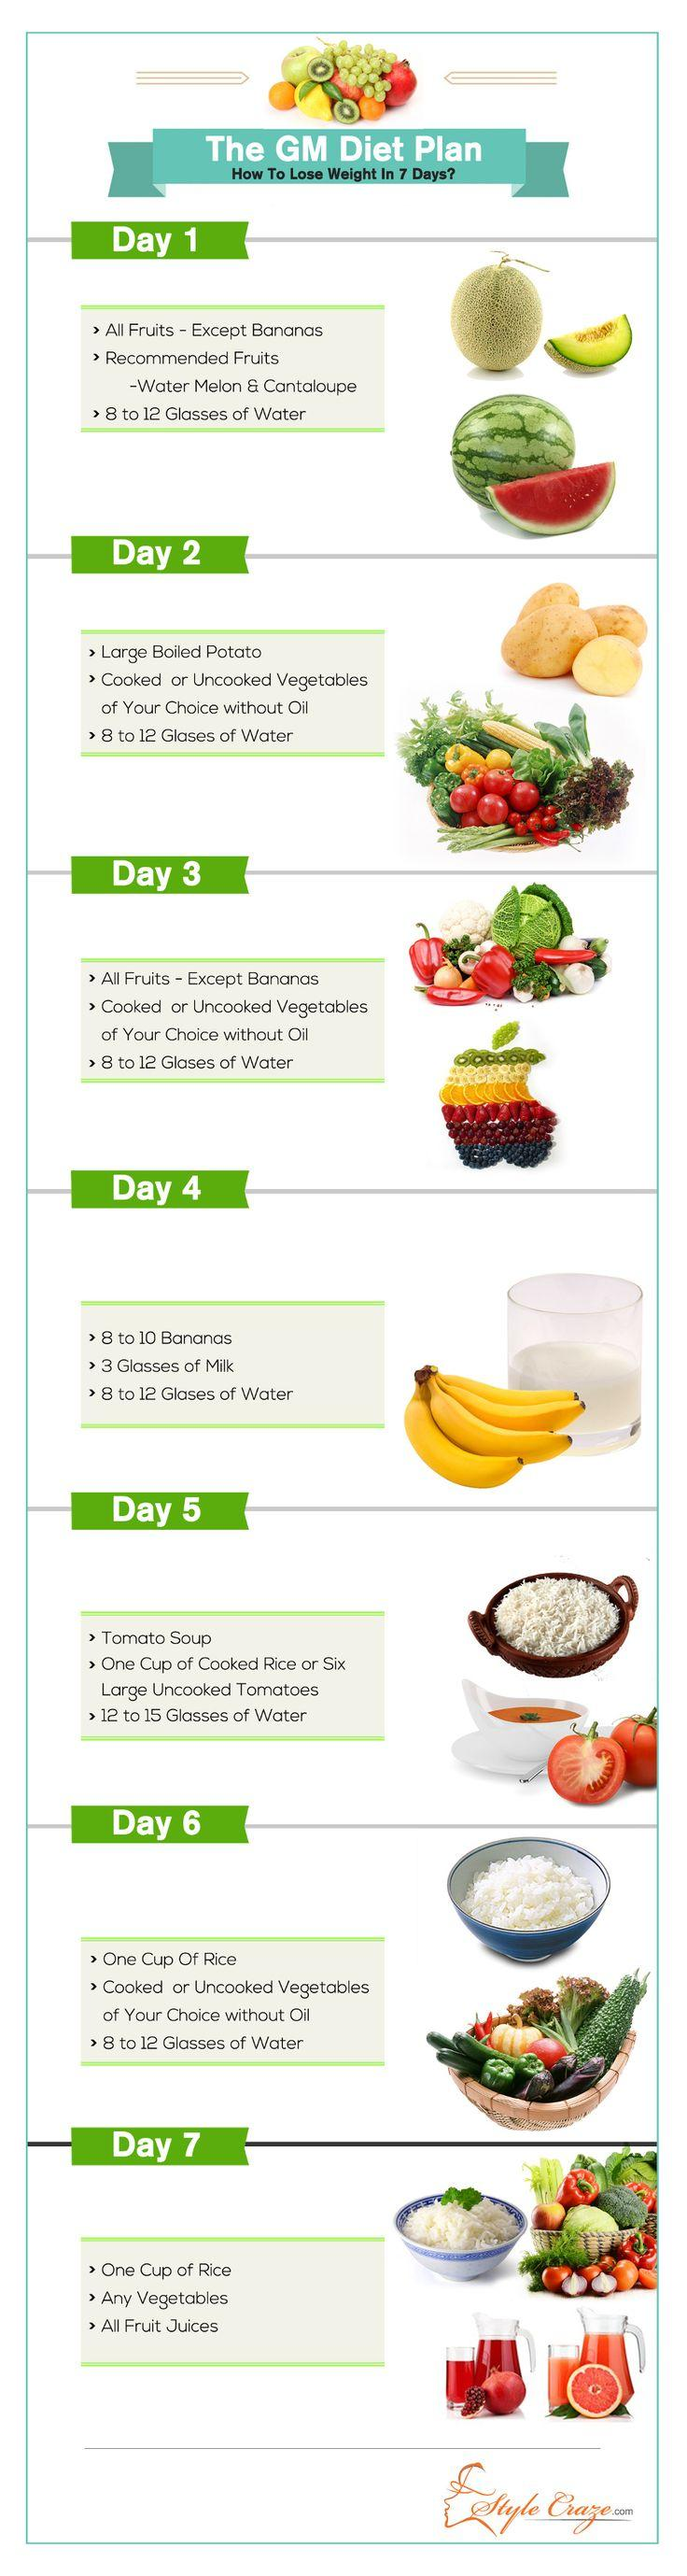 28 day diet plan menu picture 3